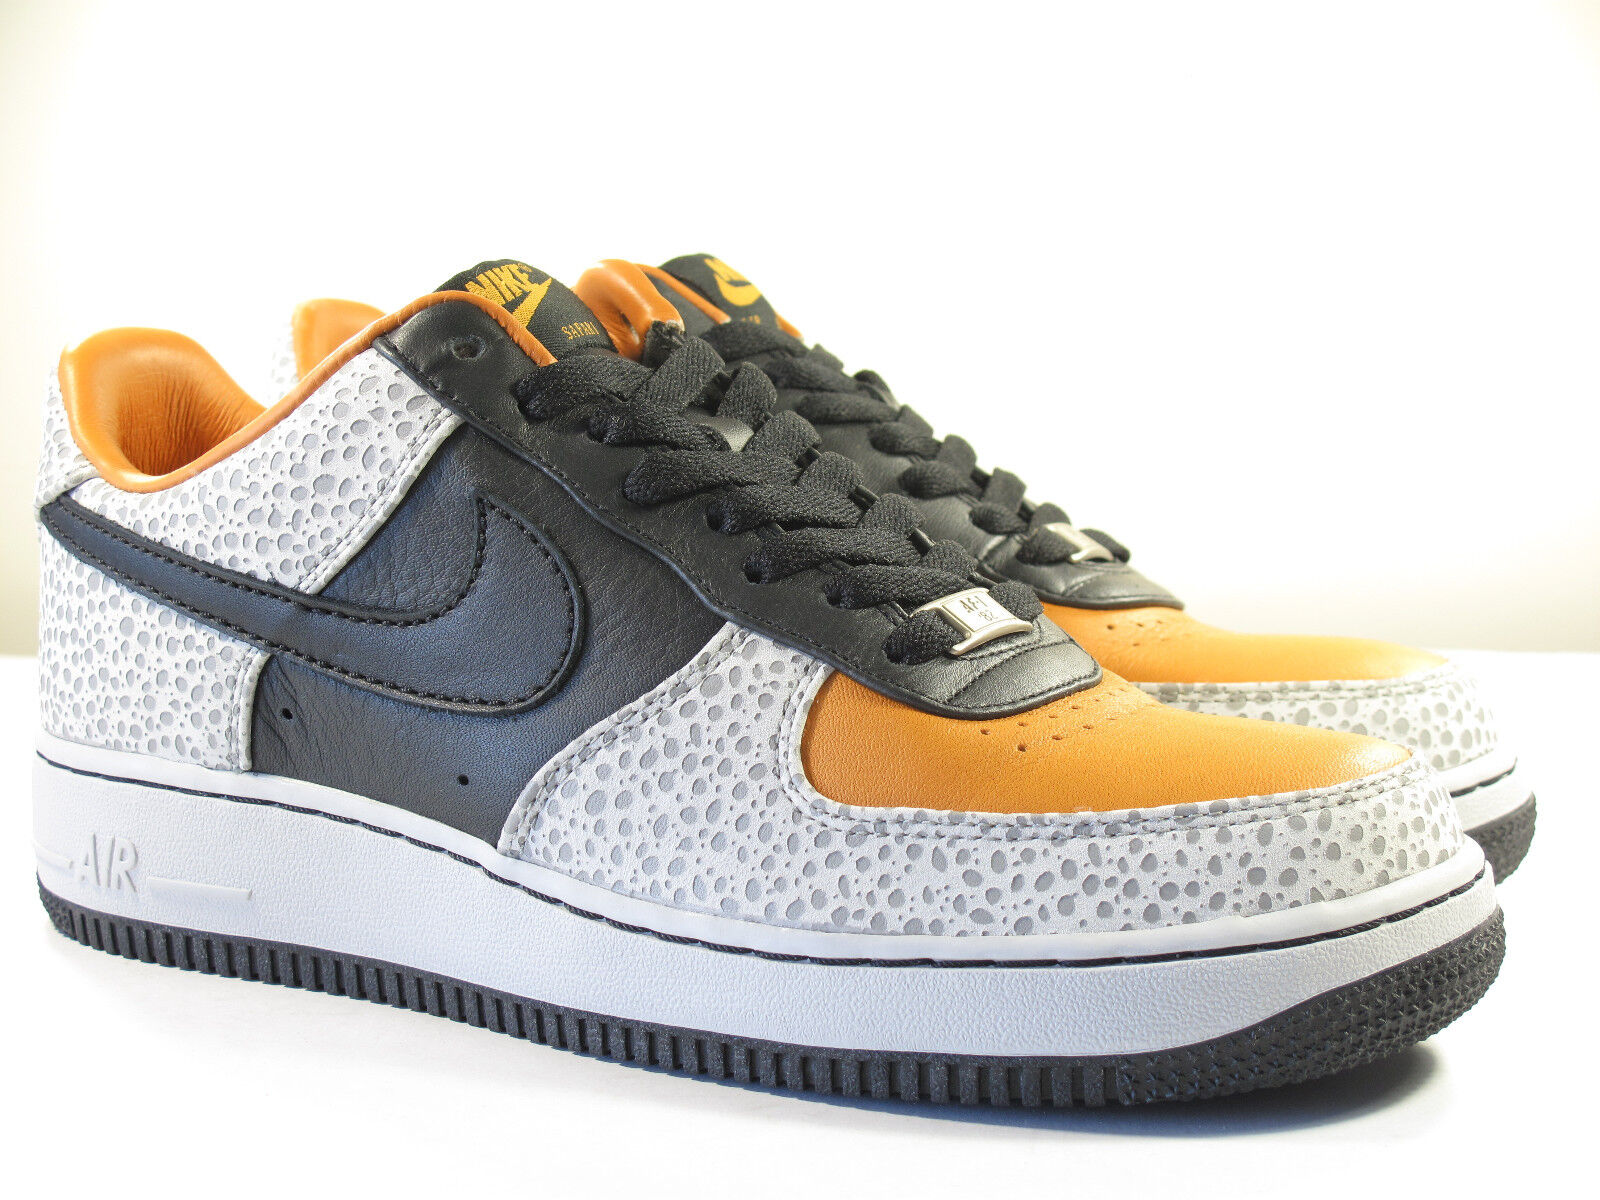 DS NIKE 2007 AIR FORCE 1 SAFARI CARROT 8.5, 11 - 12 MAX TRAINER VINTAGE SUPREME